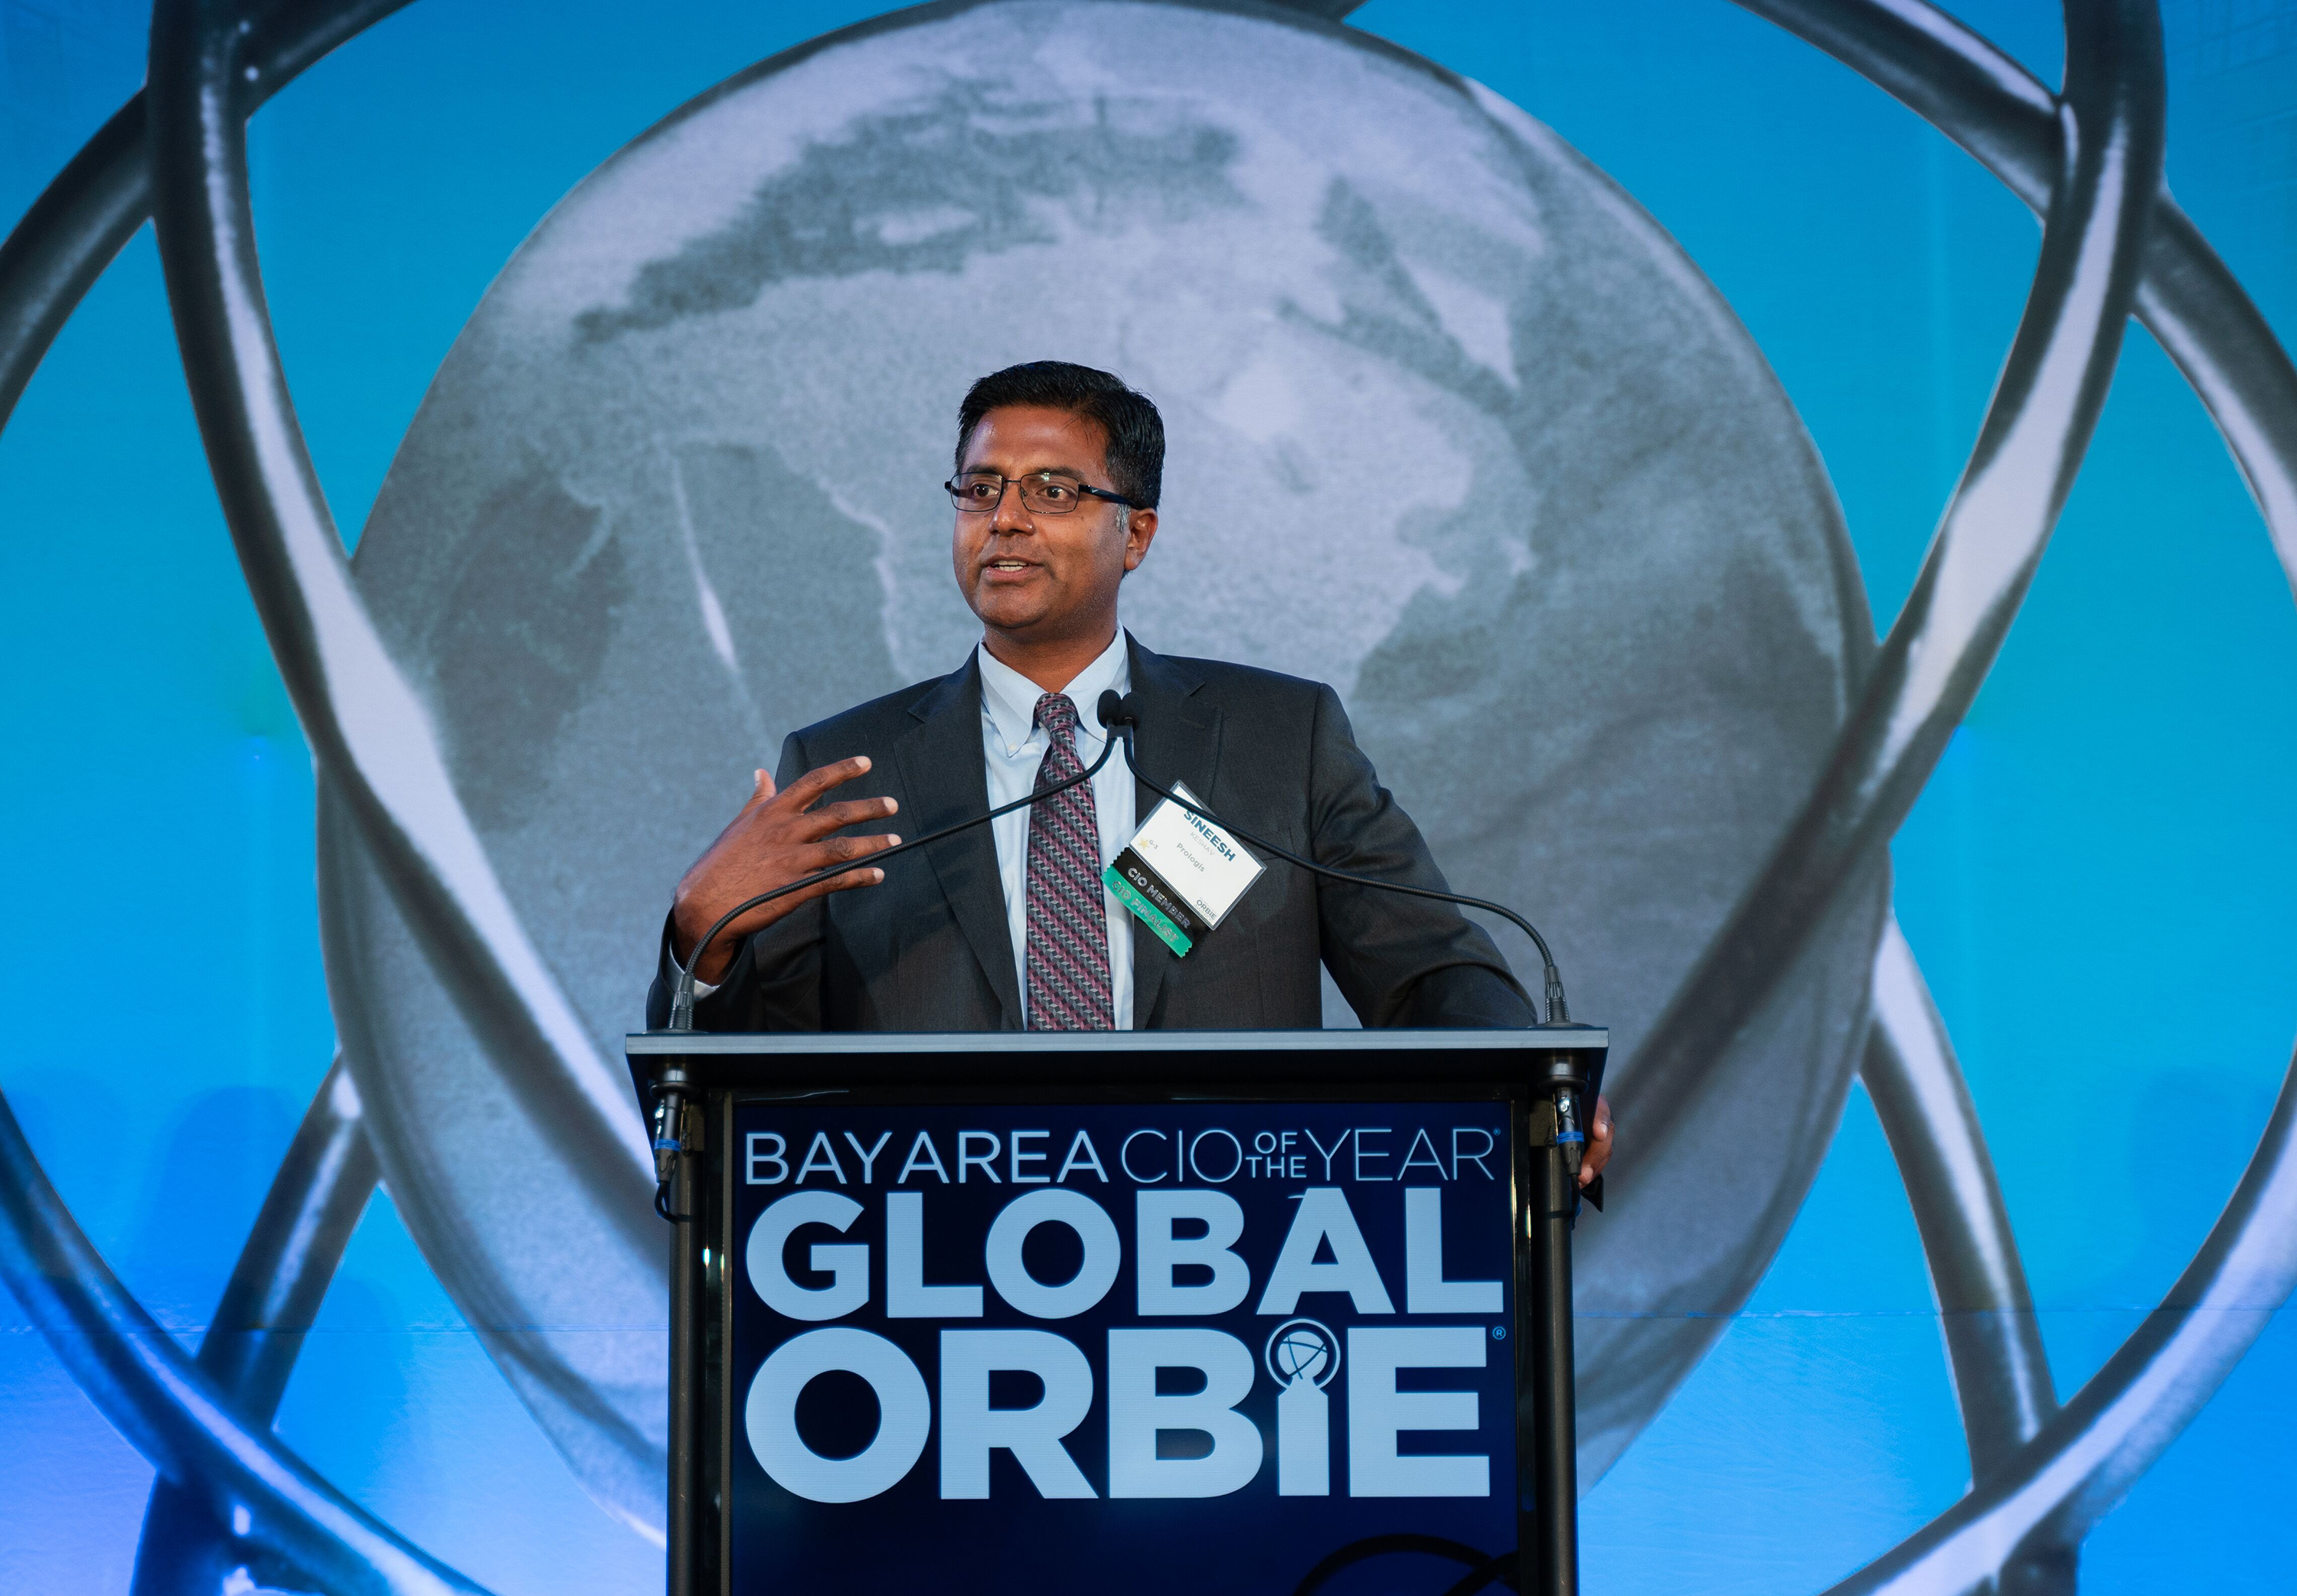 Prologis' Sineesh Keshav speaking at ORBIE